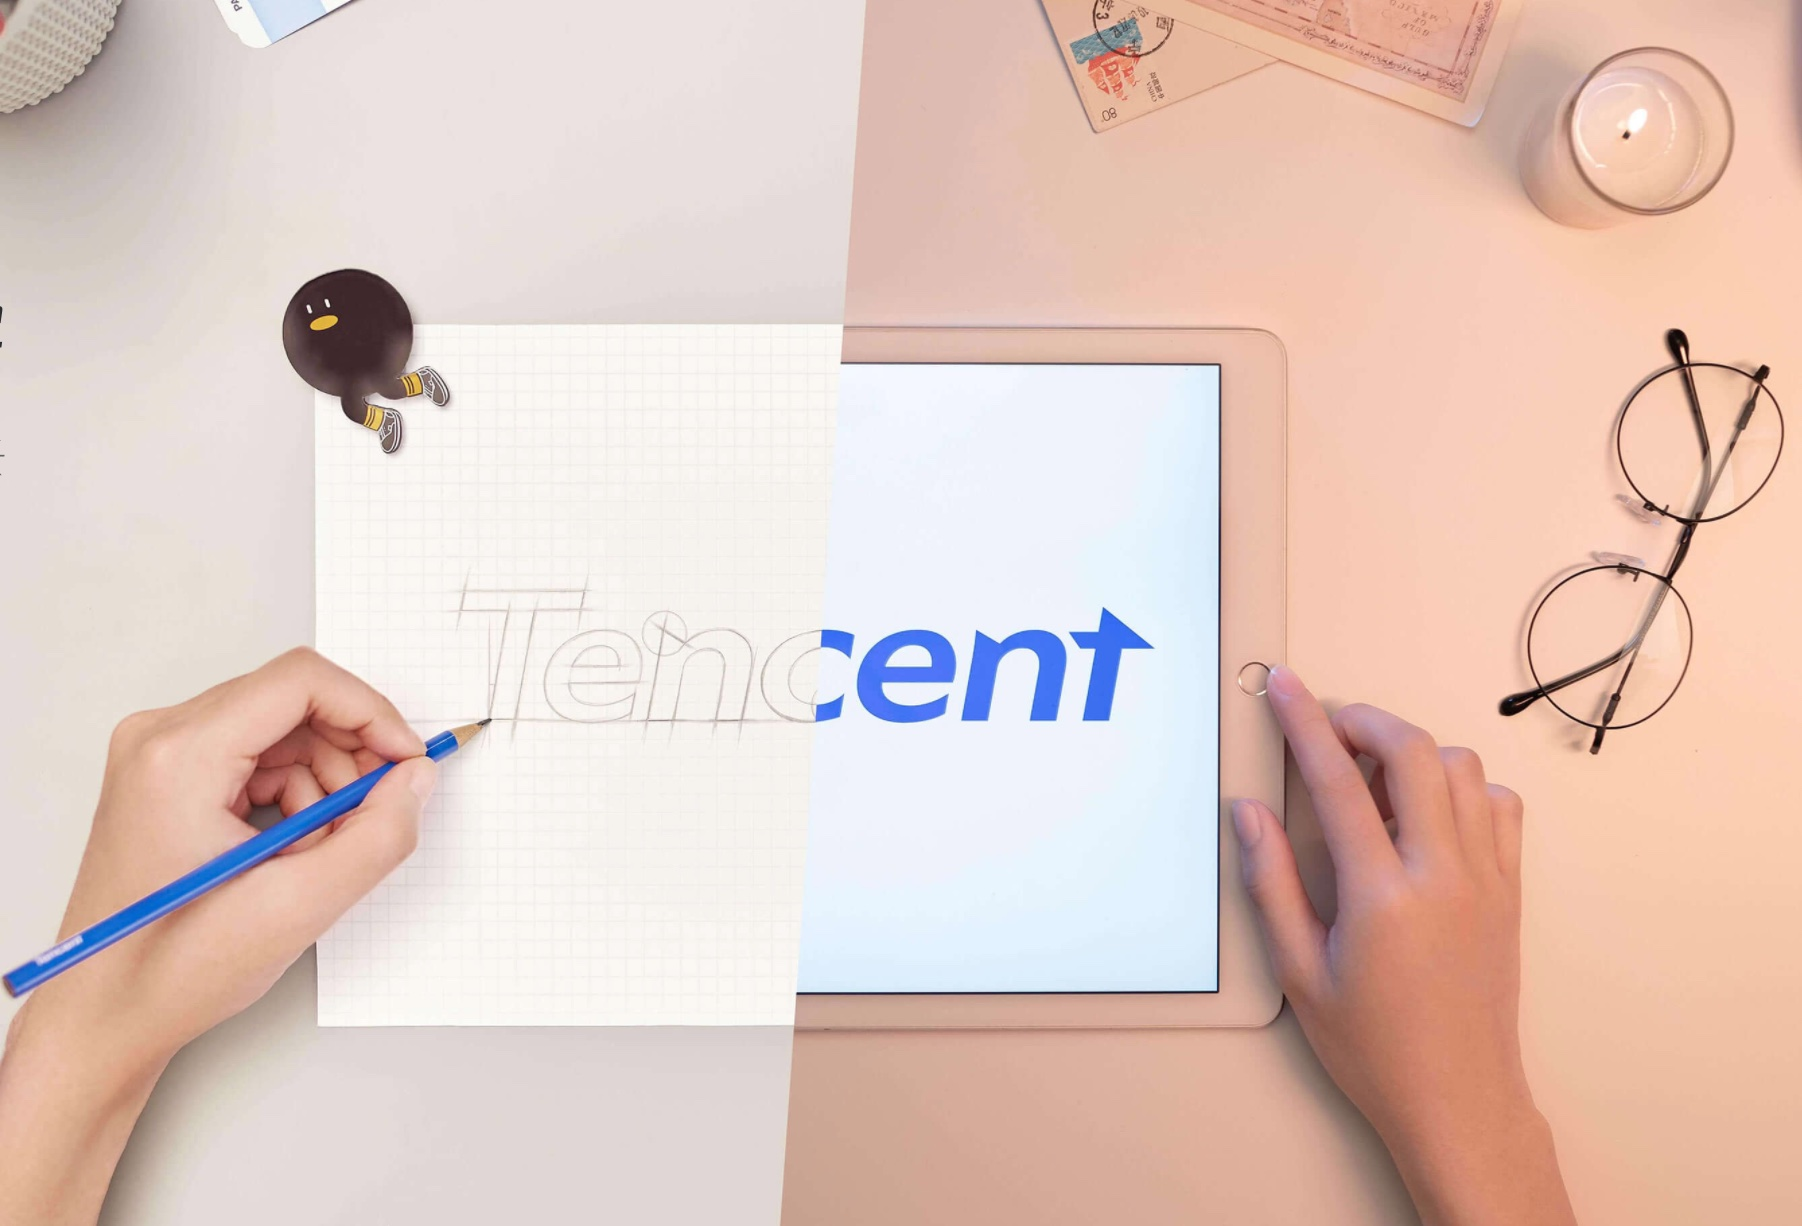 Tencent's Q4 revenue up 26% year-on-year to RMB 133.67 billion, in line with expectations-CnTechPost